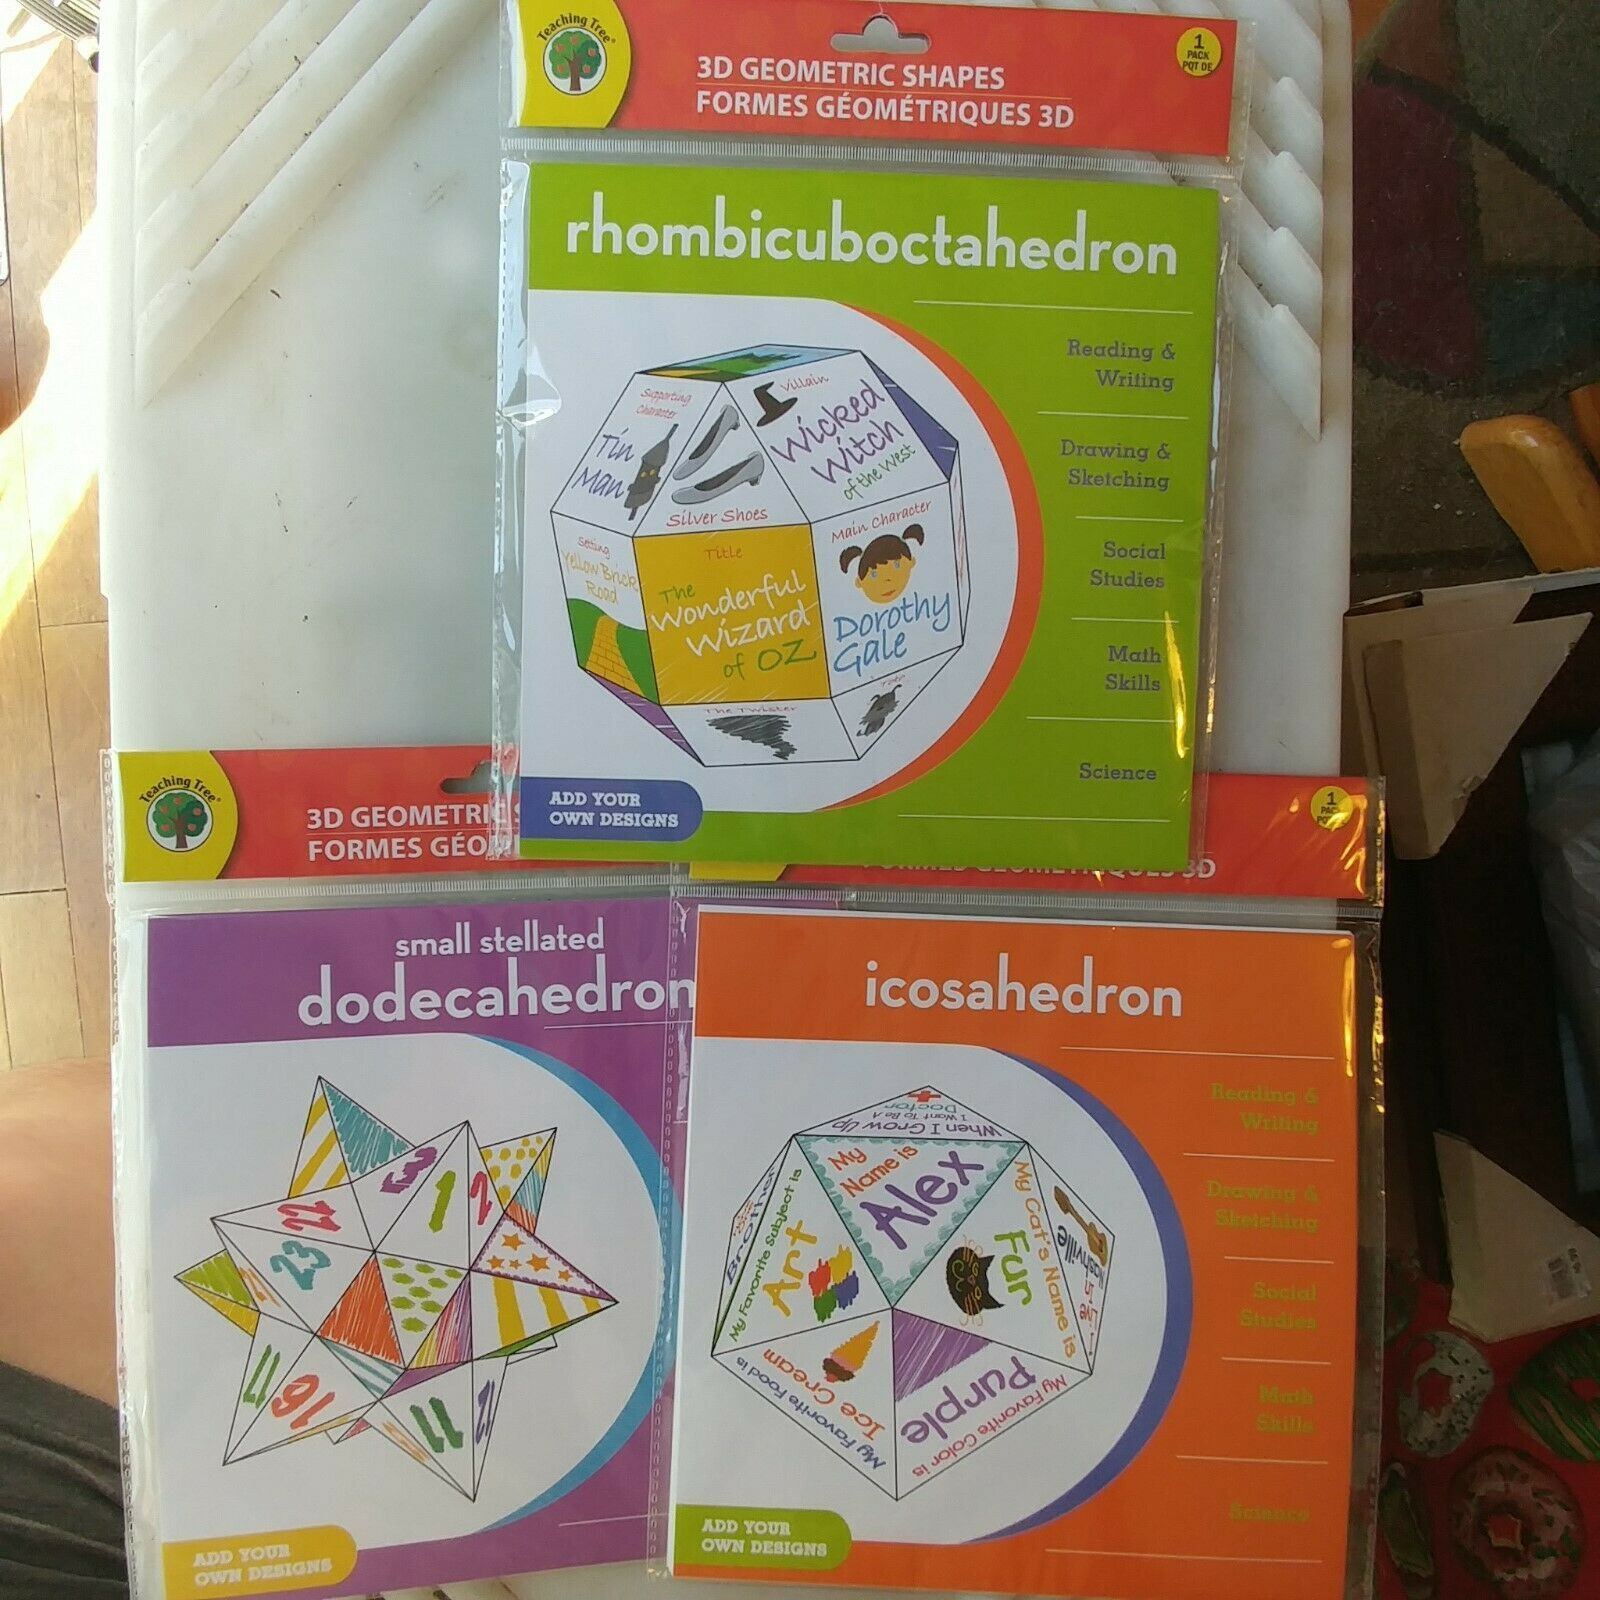 Primary image for 3D Geometric Shapes: Rhombicuboctahedroni, Icosahedron & Dodecahedron Brand New